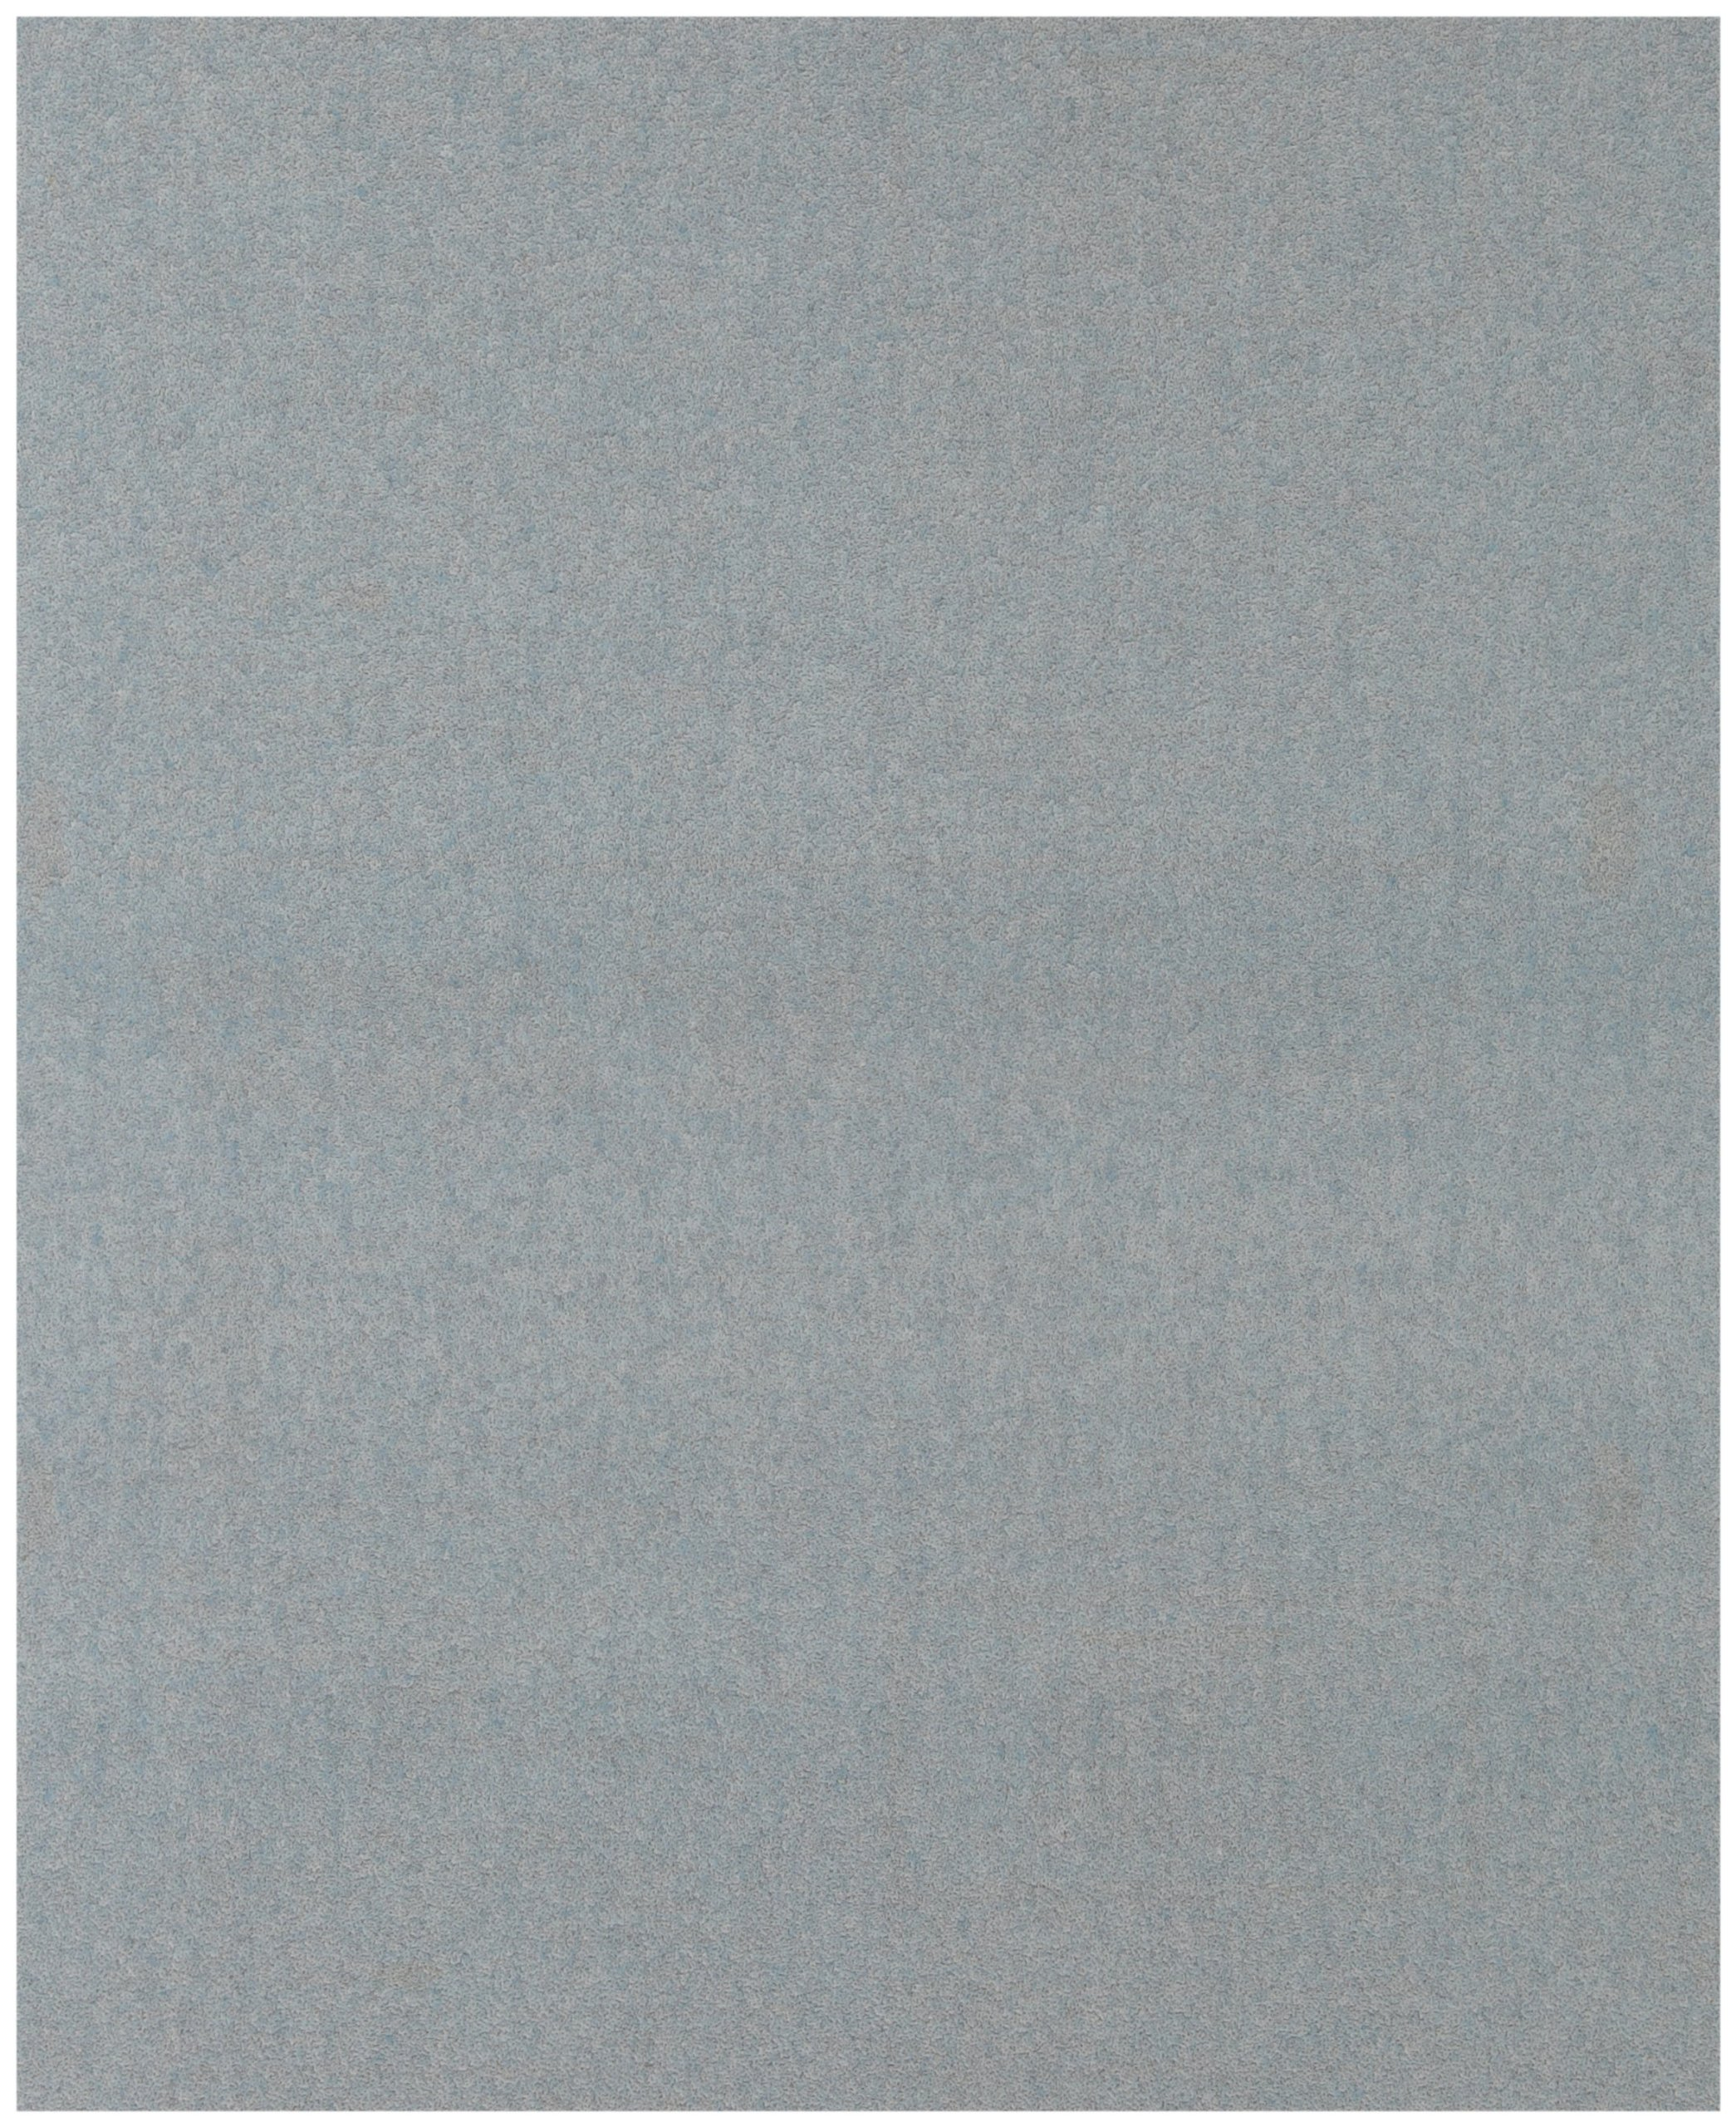 Norton Sandpaper 3X 80-Grit 9-by-11-Inch Sheets, 20-Sheets per Pack #2641